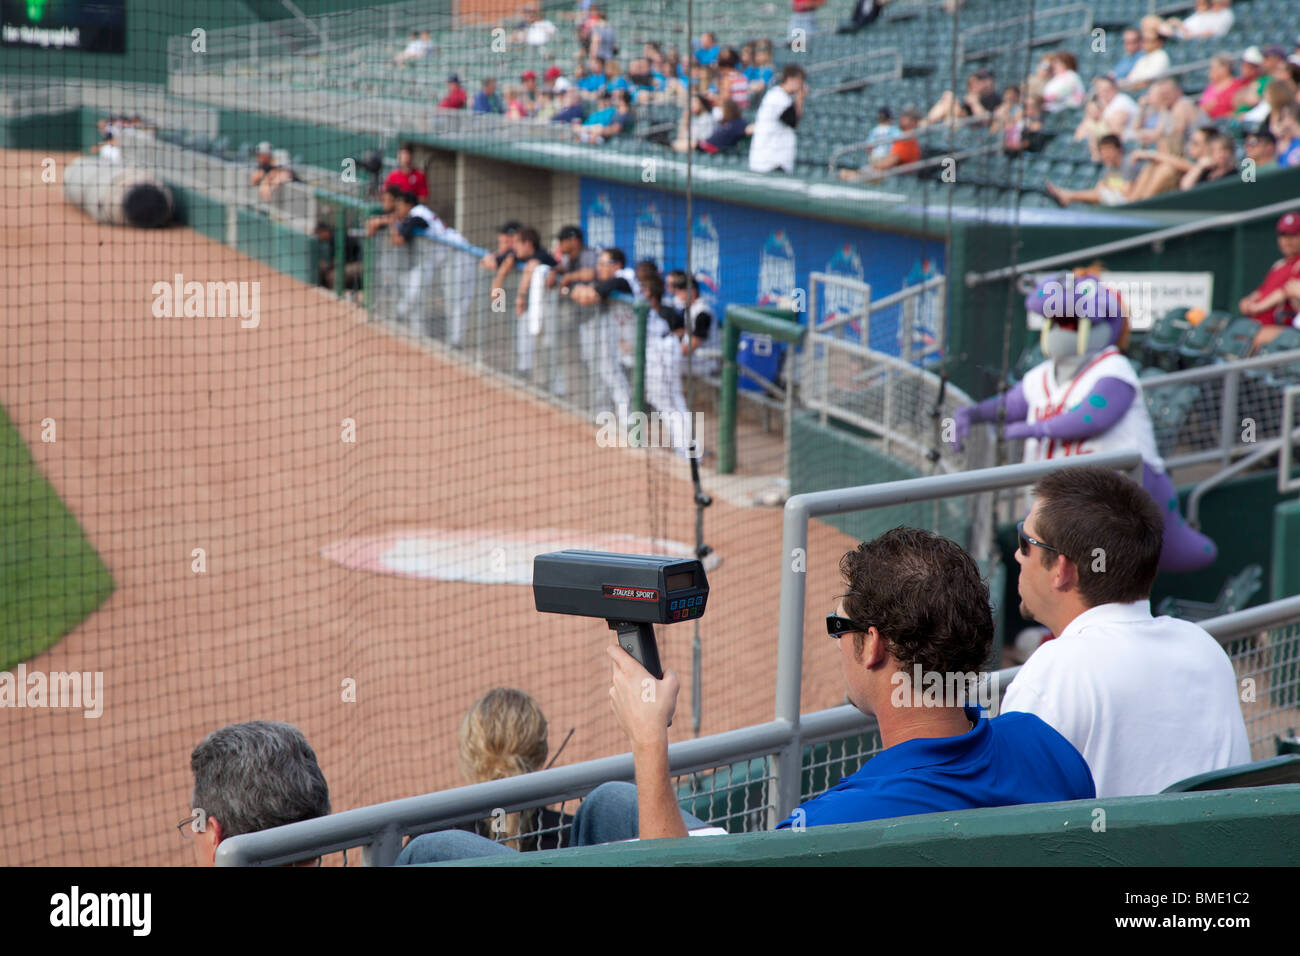 Baseball Scout Uses Radar Gun to Time Pitcher's Speed - Stock Image